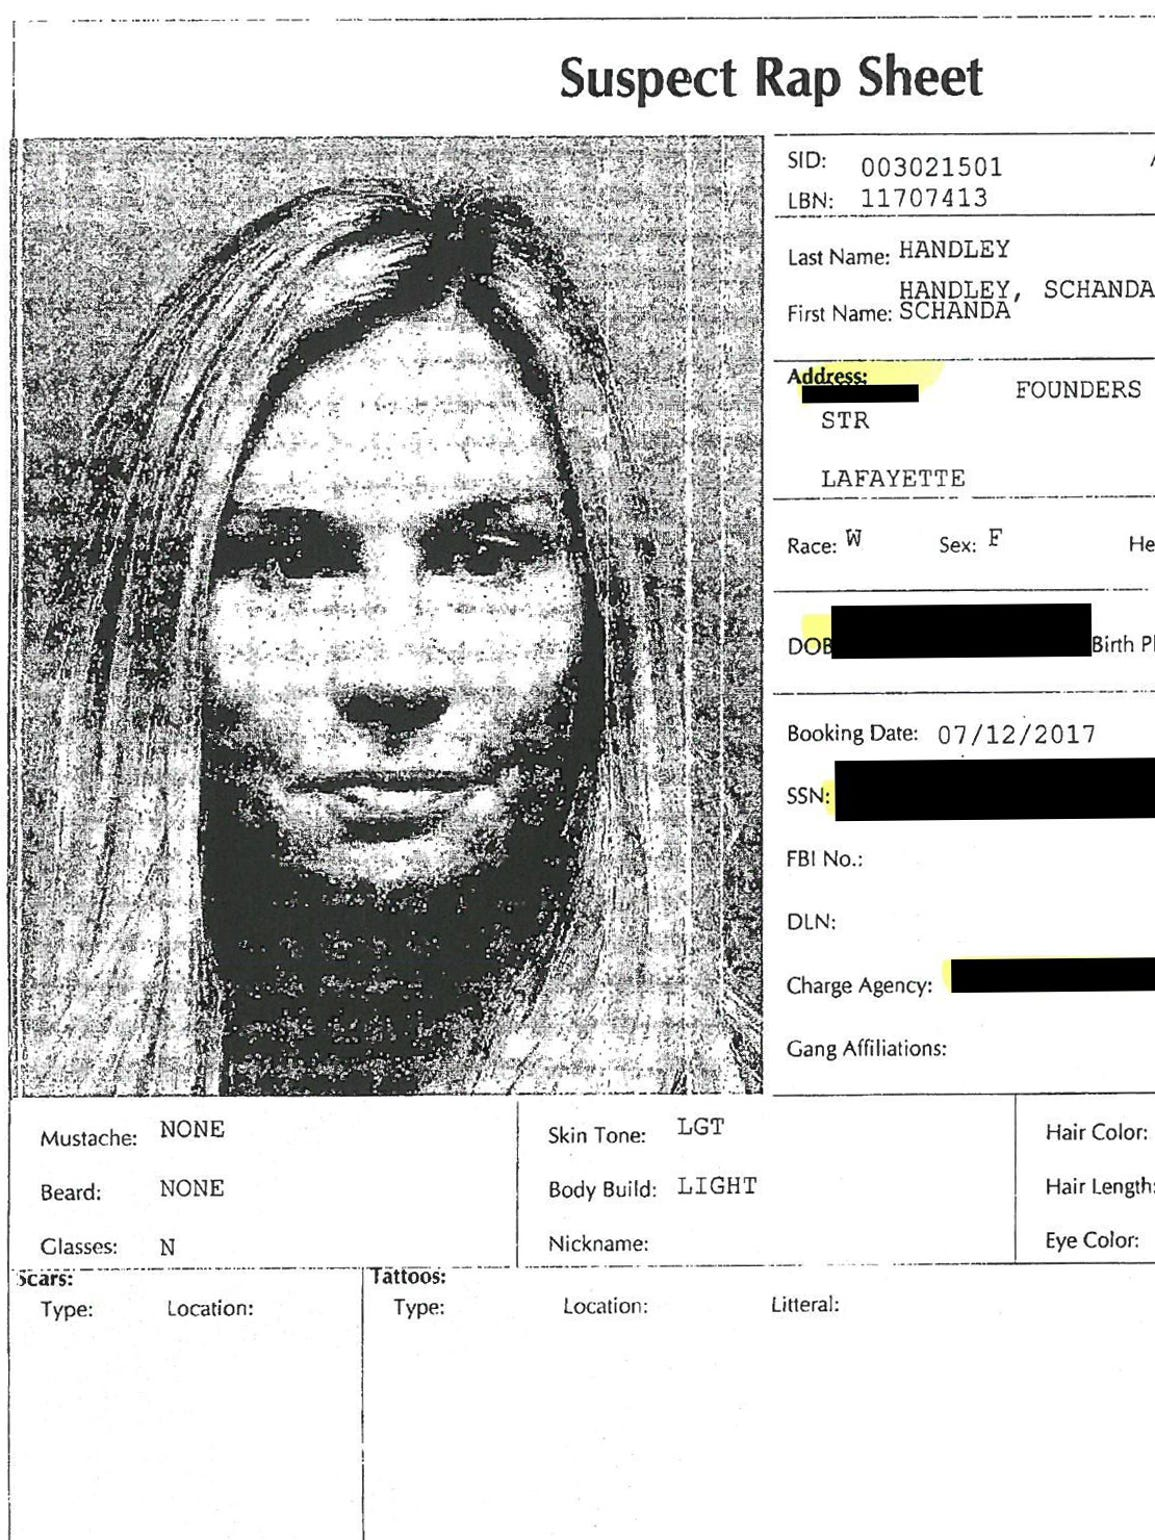 The booking report for Schanda Handley from July 2017